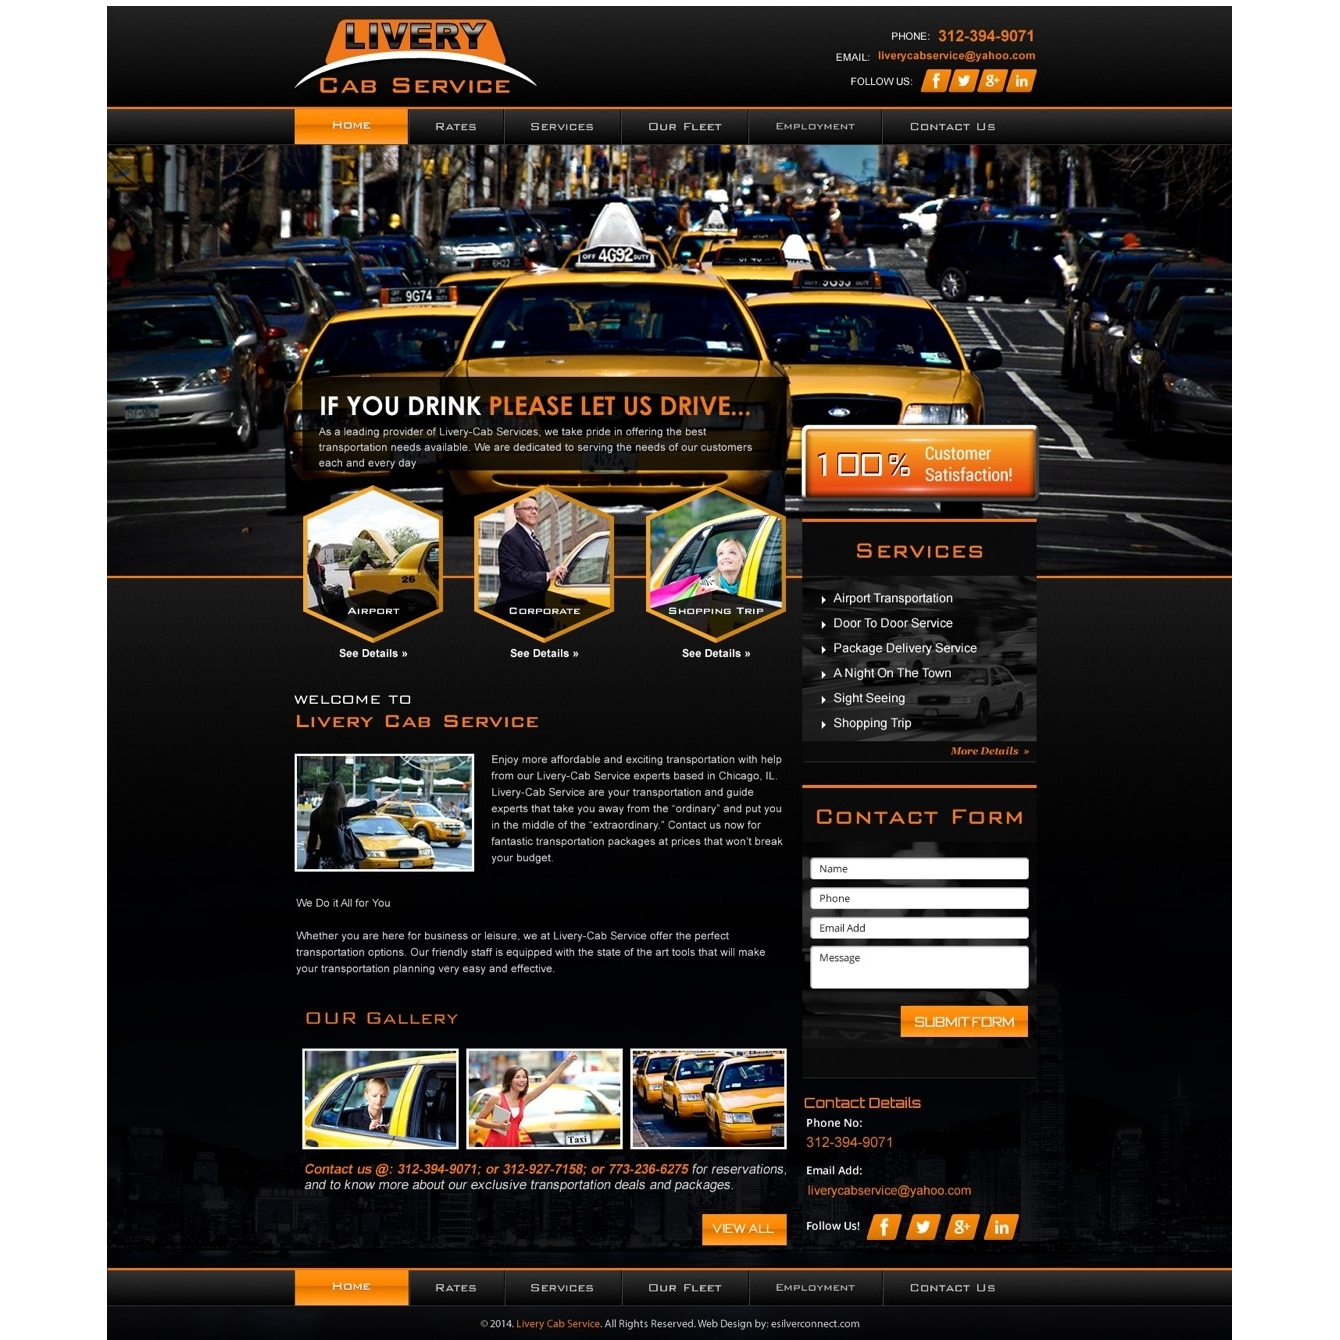 Livery Taxicab Service